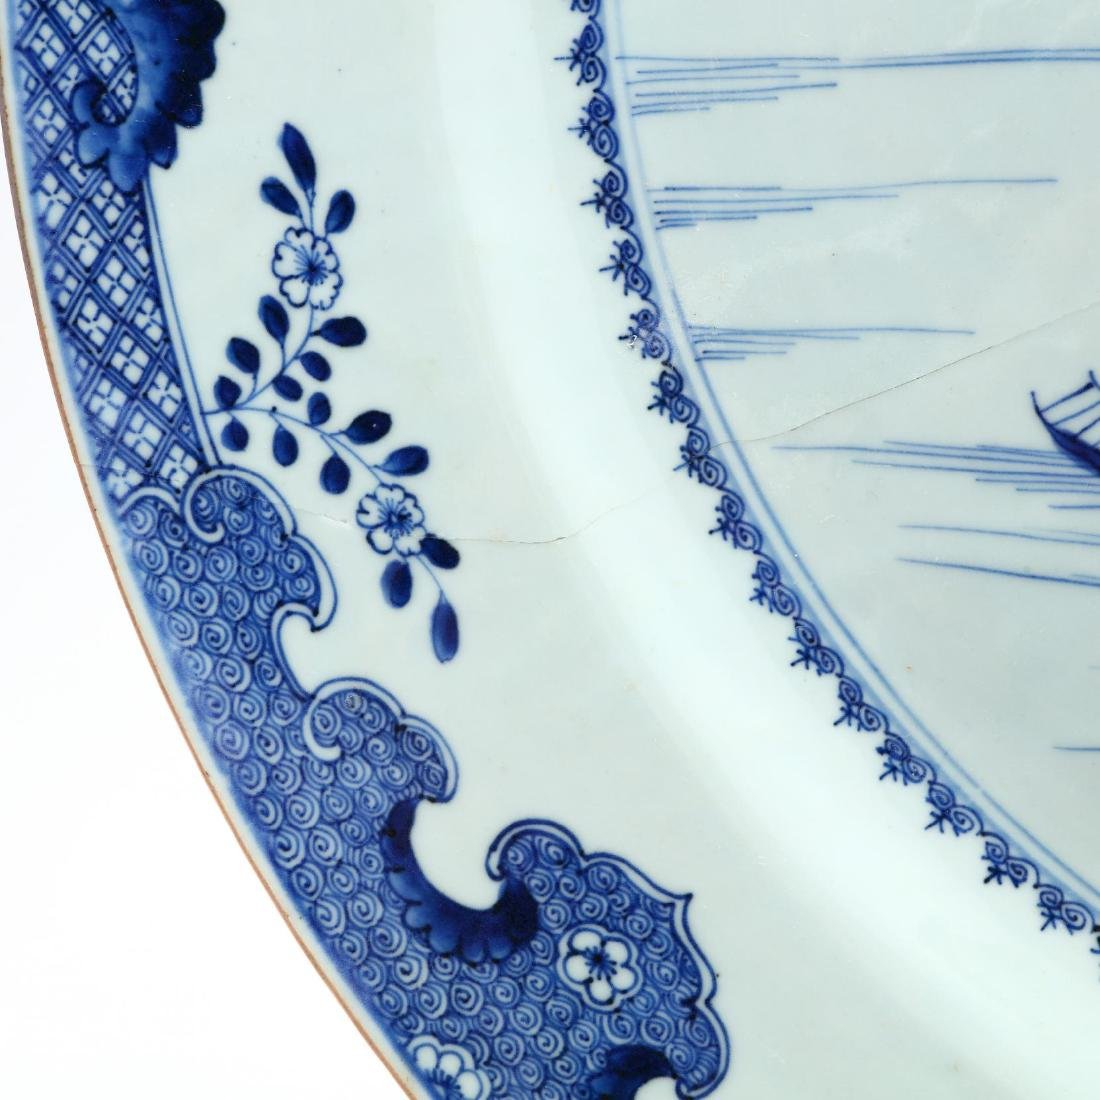 A Large Chinese Charger and Decorative Porcelain Items - 2